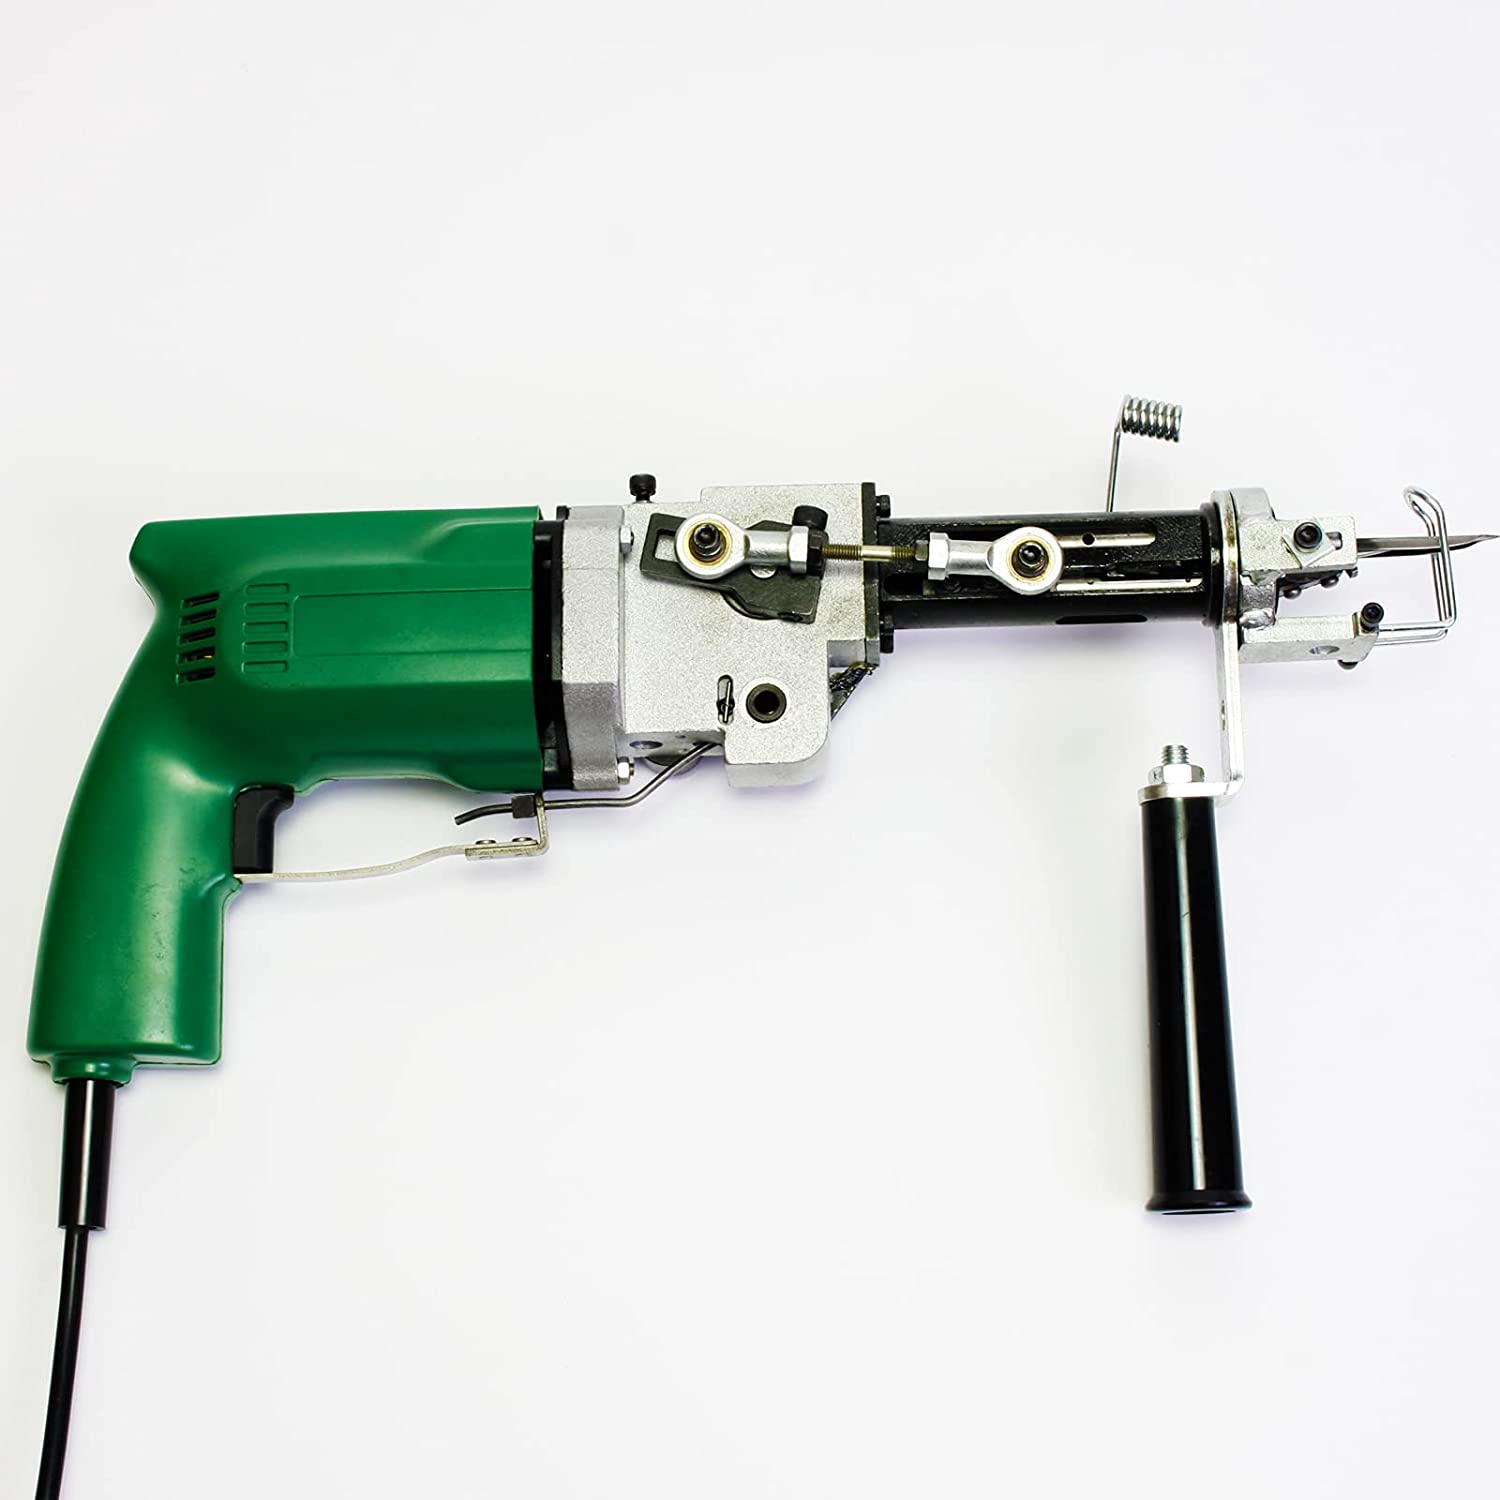 IFISH Electric Rug Tufting Gun 110V 2 Cut Loop Discount mail order Pile 1 Bombing new work and in Pi